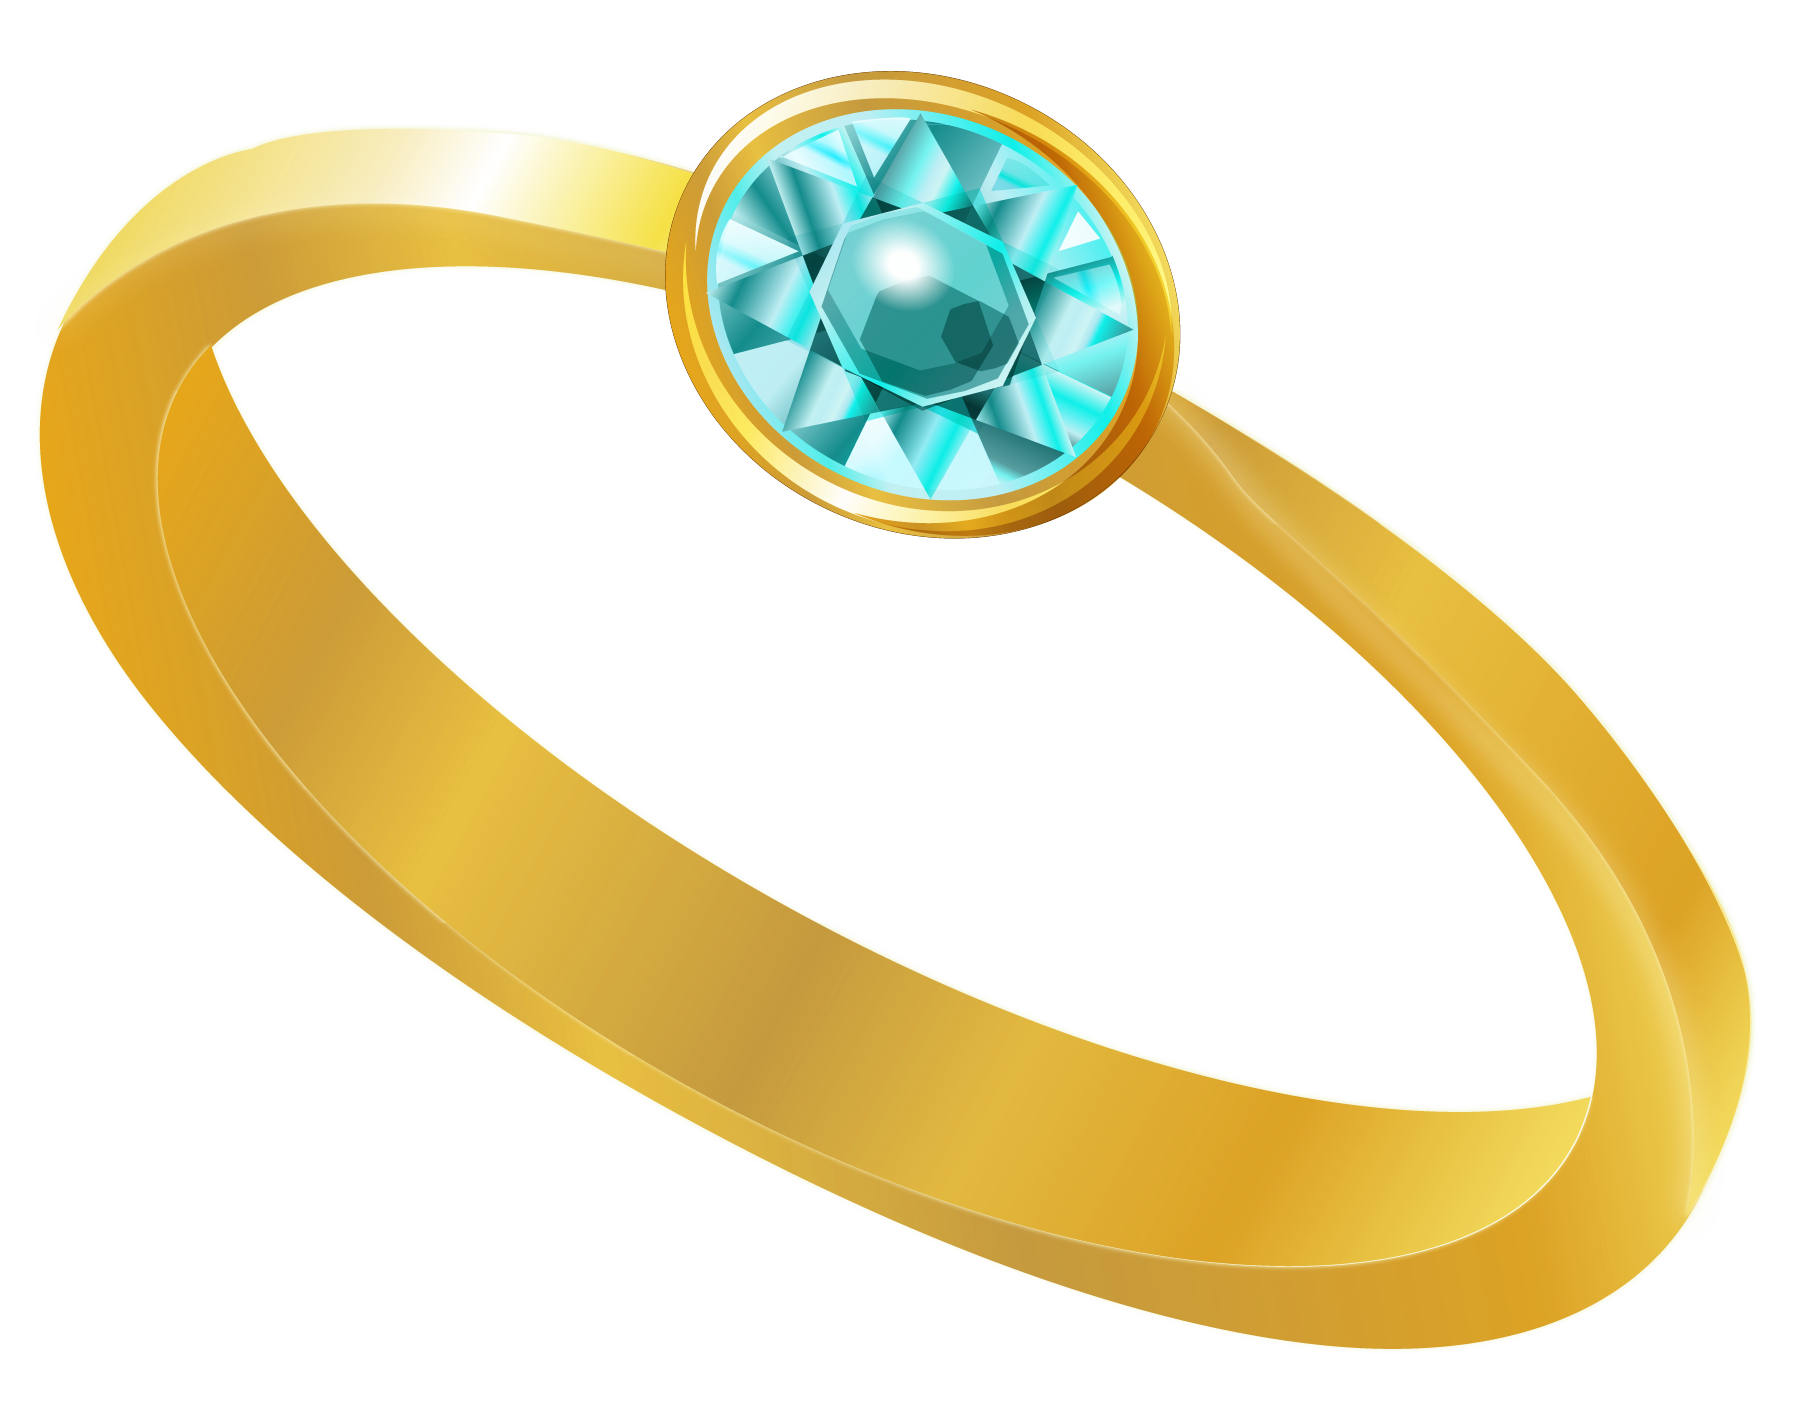 jewellery clipart ring